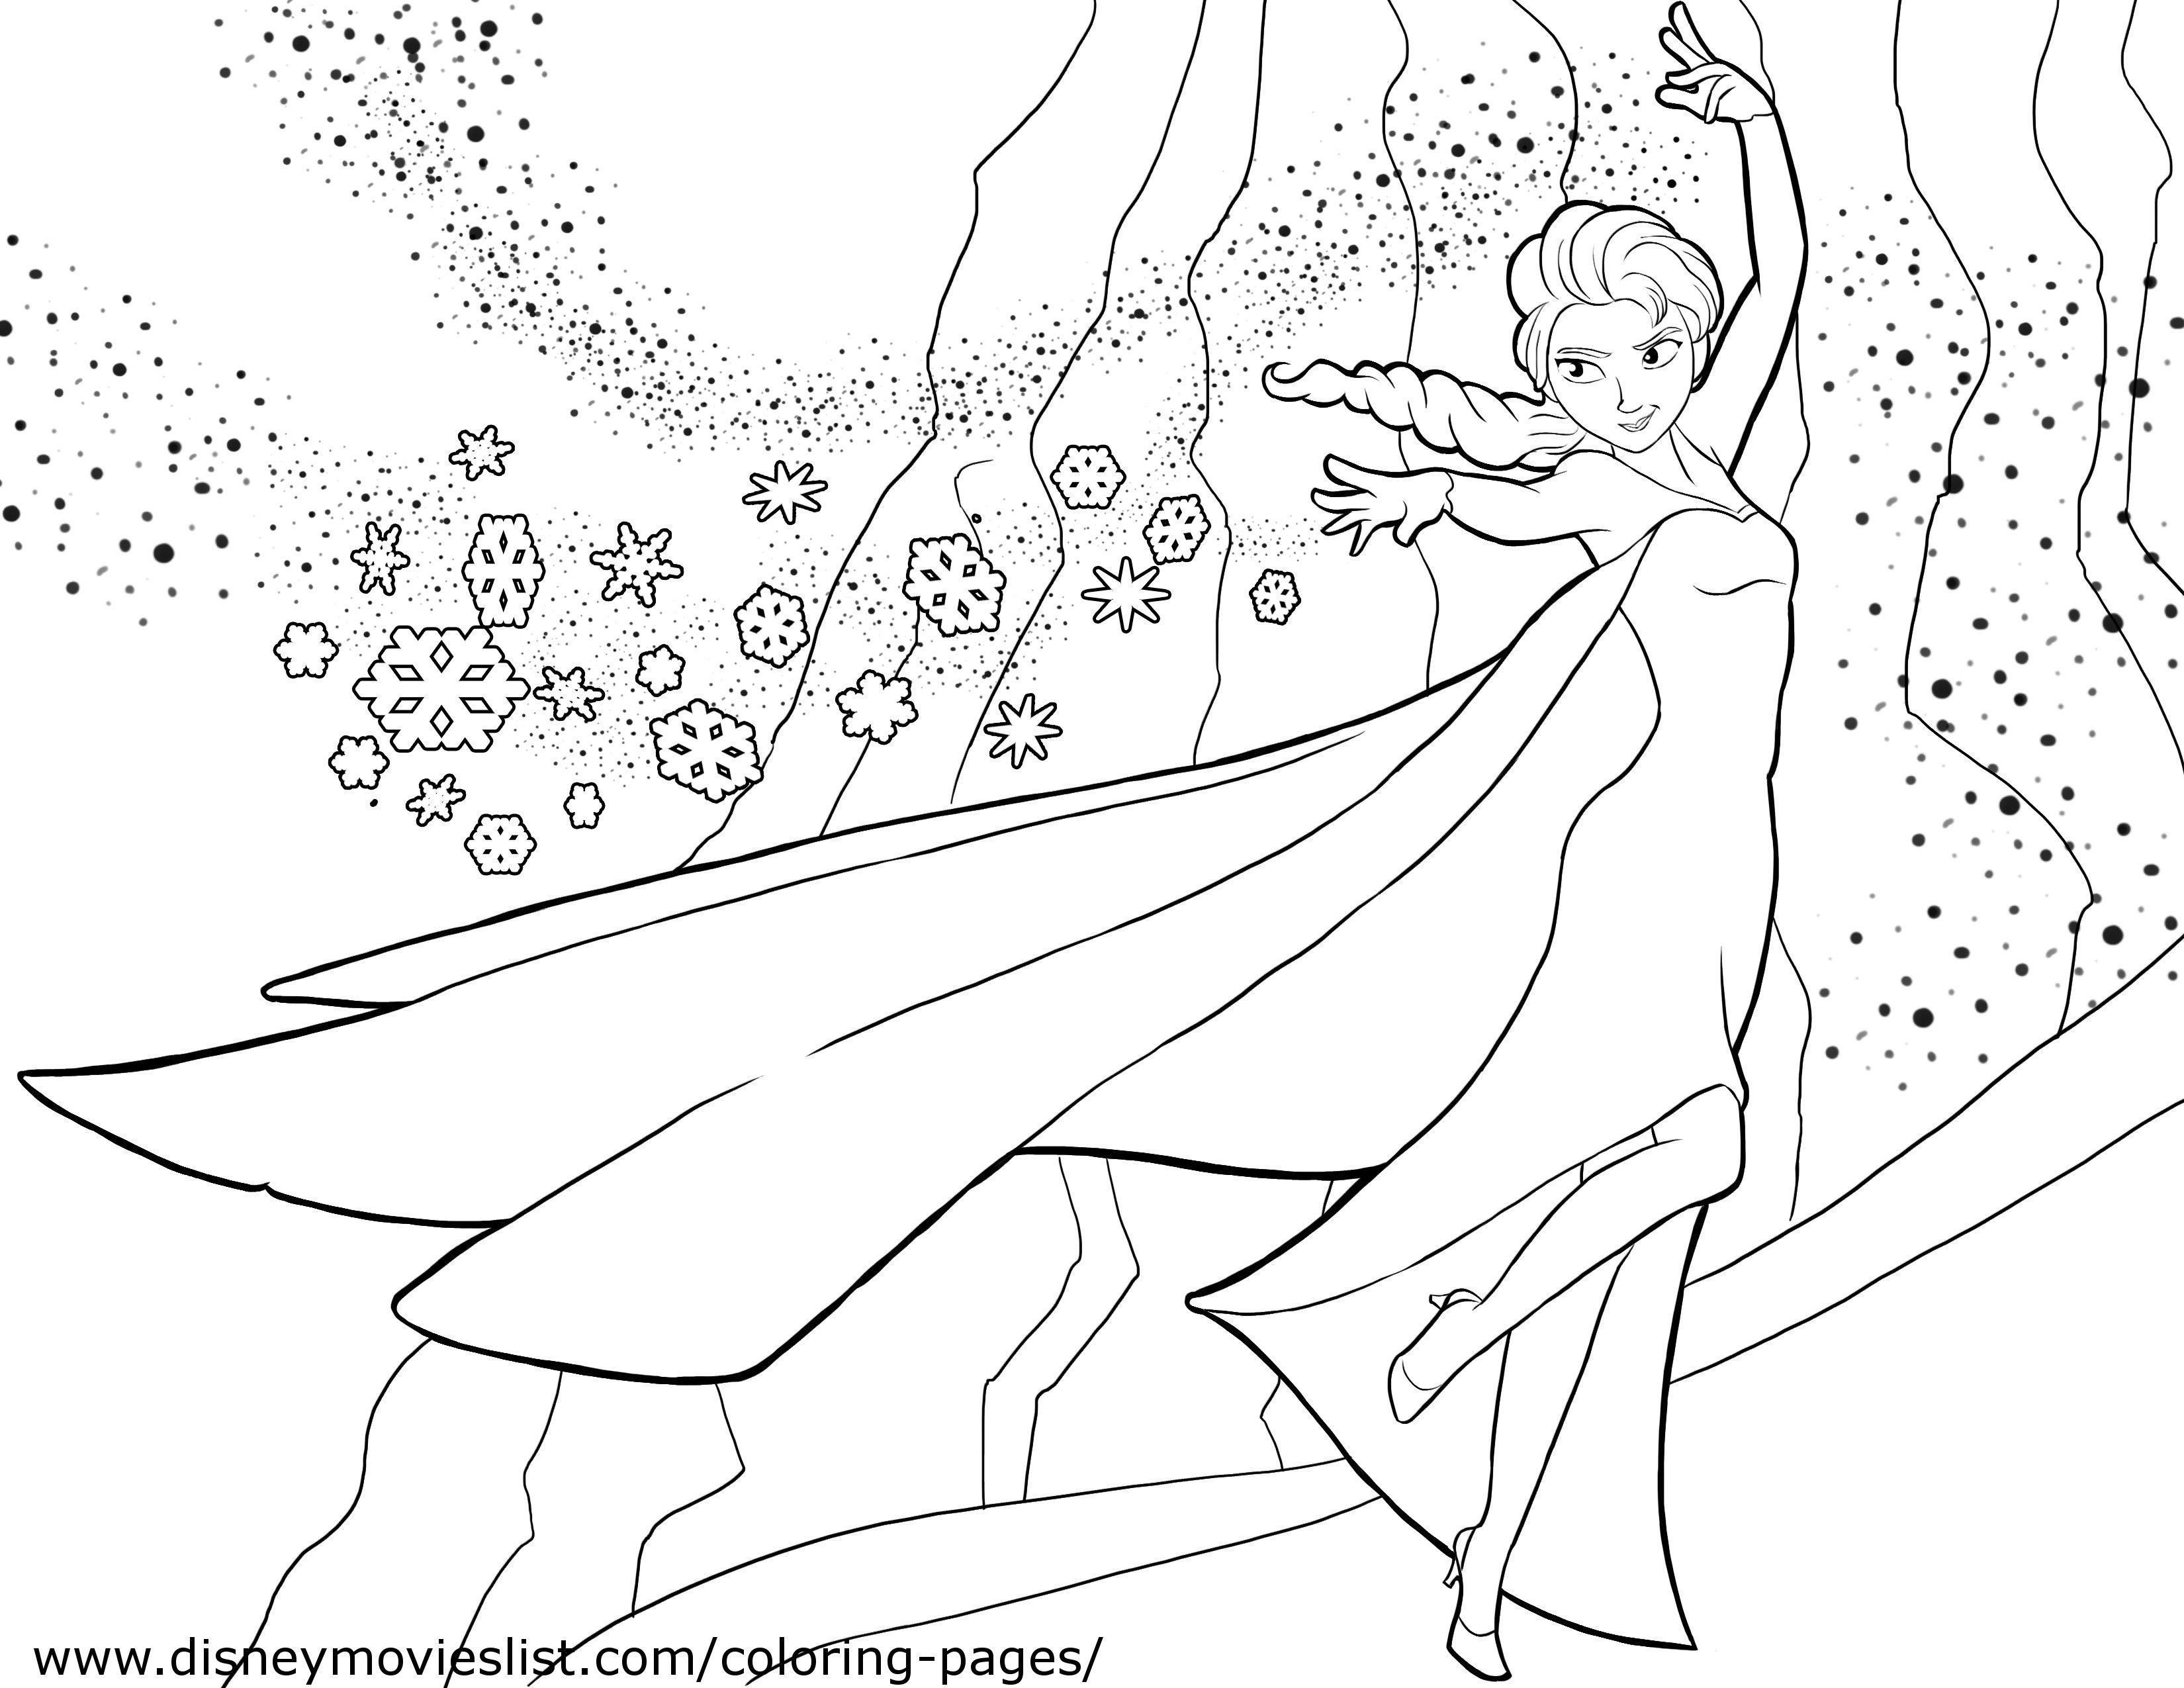 Frozen 2 Coloring Pages At Getdrawings Com Free For